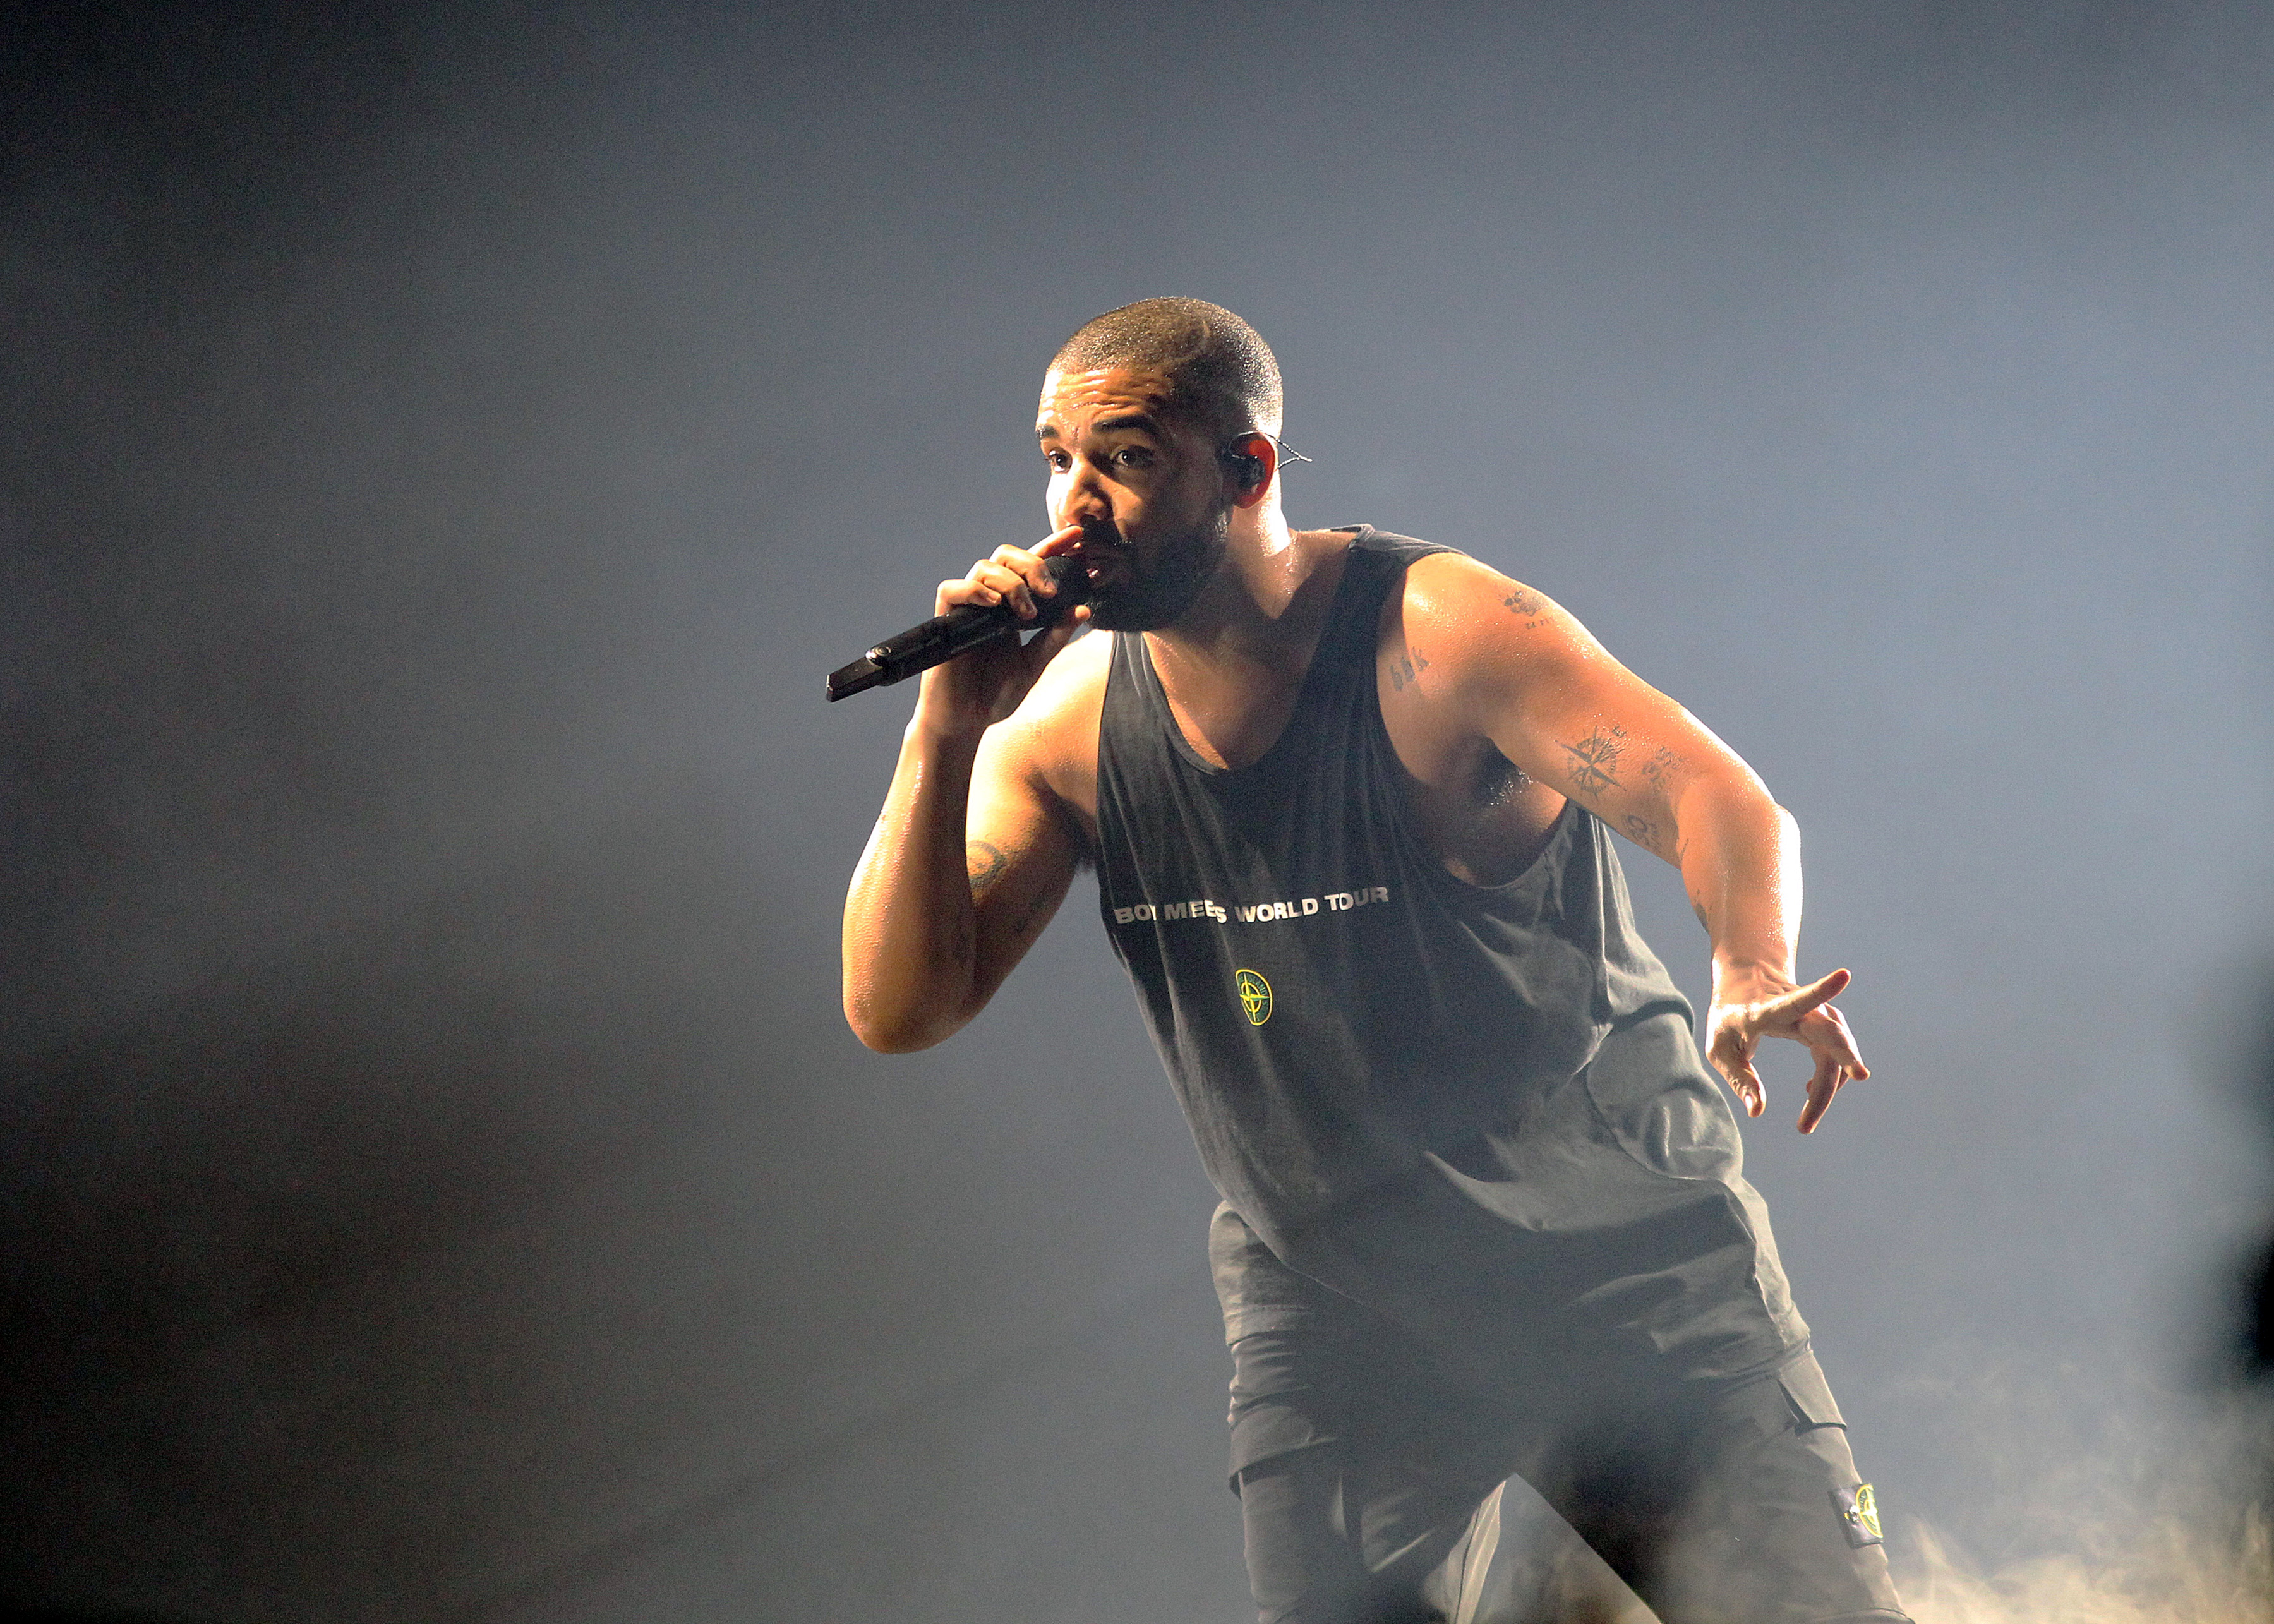 Canadian rapper Drake performing at the O2 Arena in London as part of his Boy Meets World Tour on Thursday 2nd February 2017 (Photos by Ian Bines/WENN)  Featuring: Drake Where: London, United Kingdom When: 02 Feb 2017 Credit: WENN.com